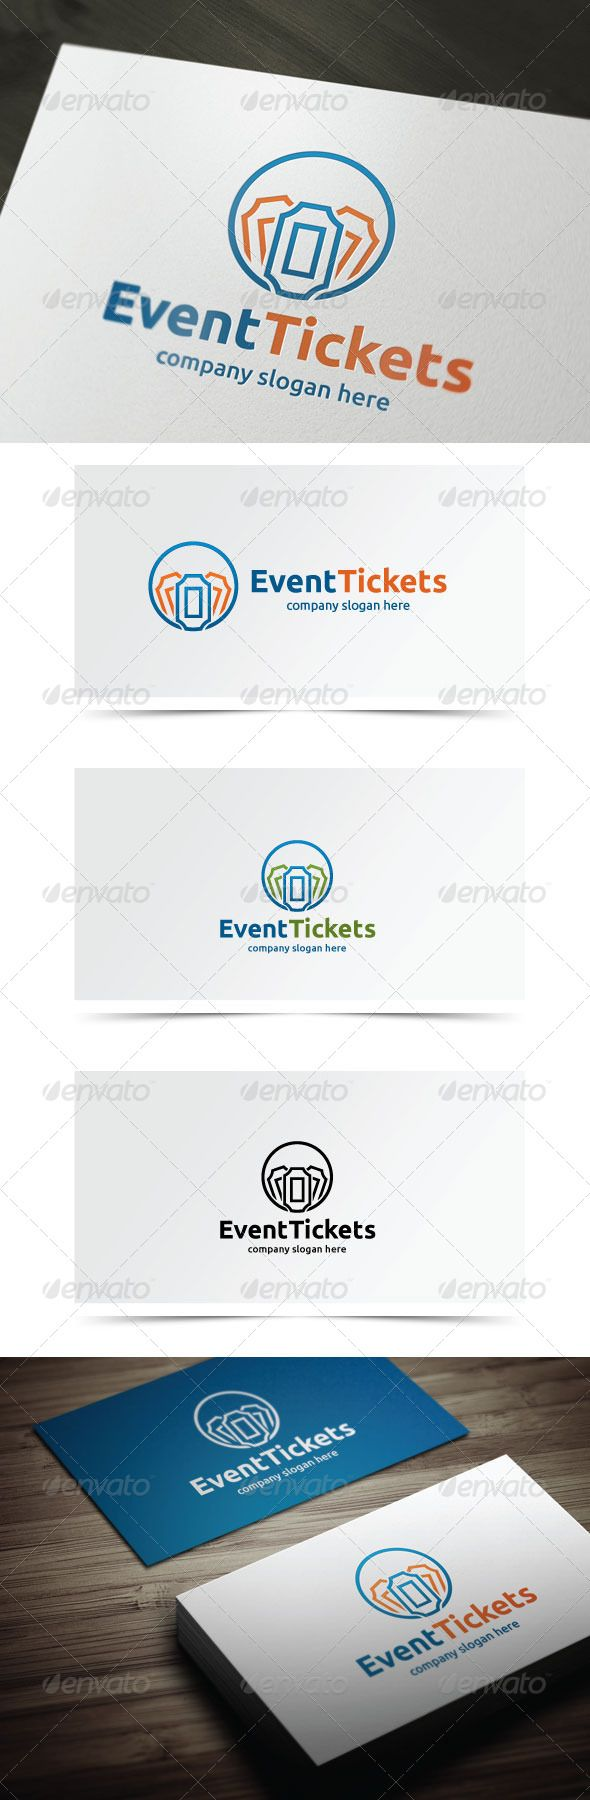 Ticket Logo Template  - Vector logo Resizable for easy editing AI, EPS files  Font Used Ubuntu http://font.ubuntu.com